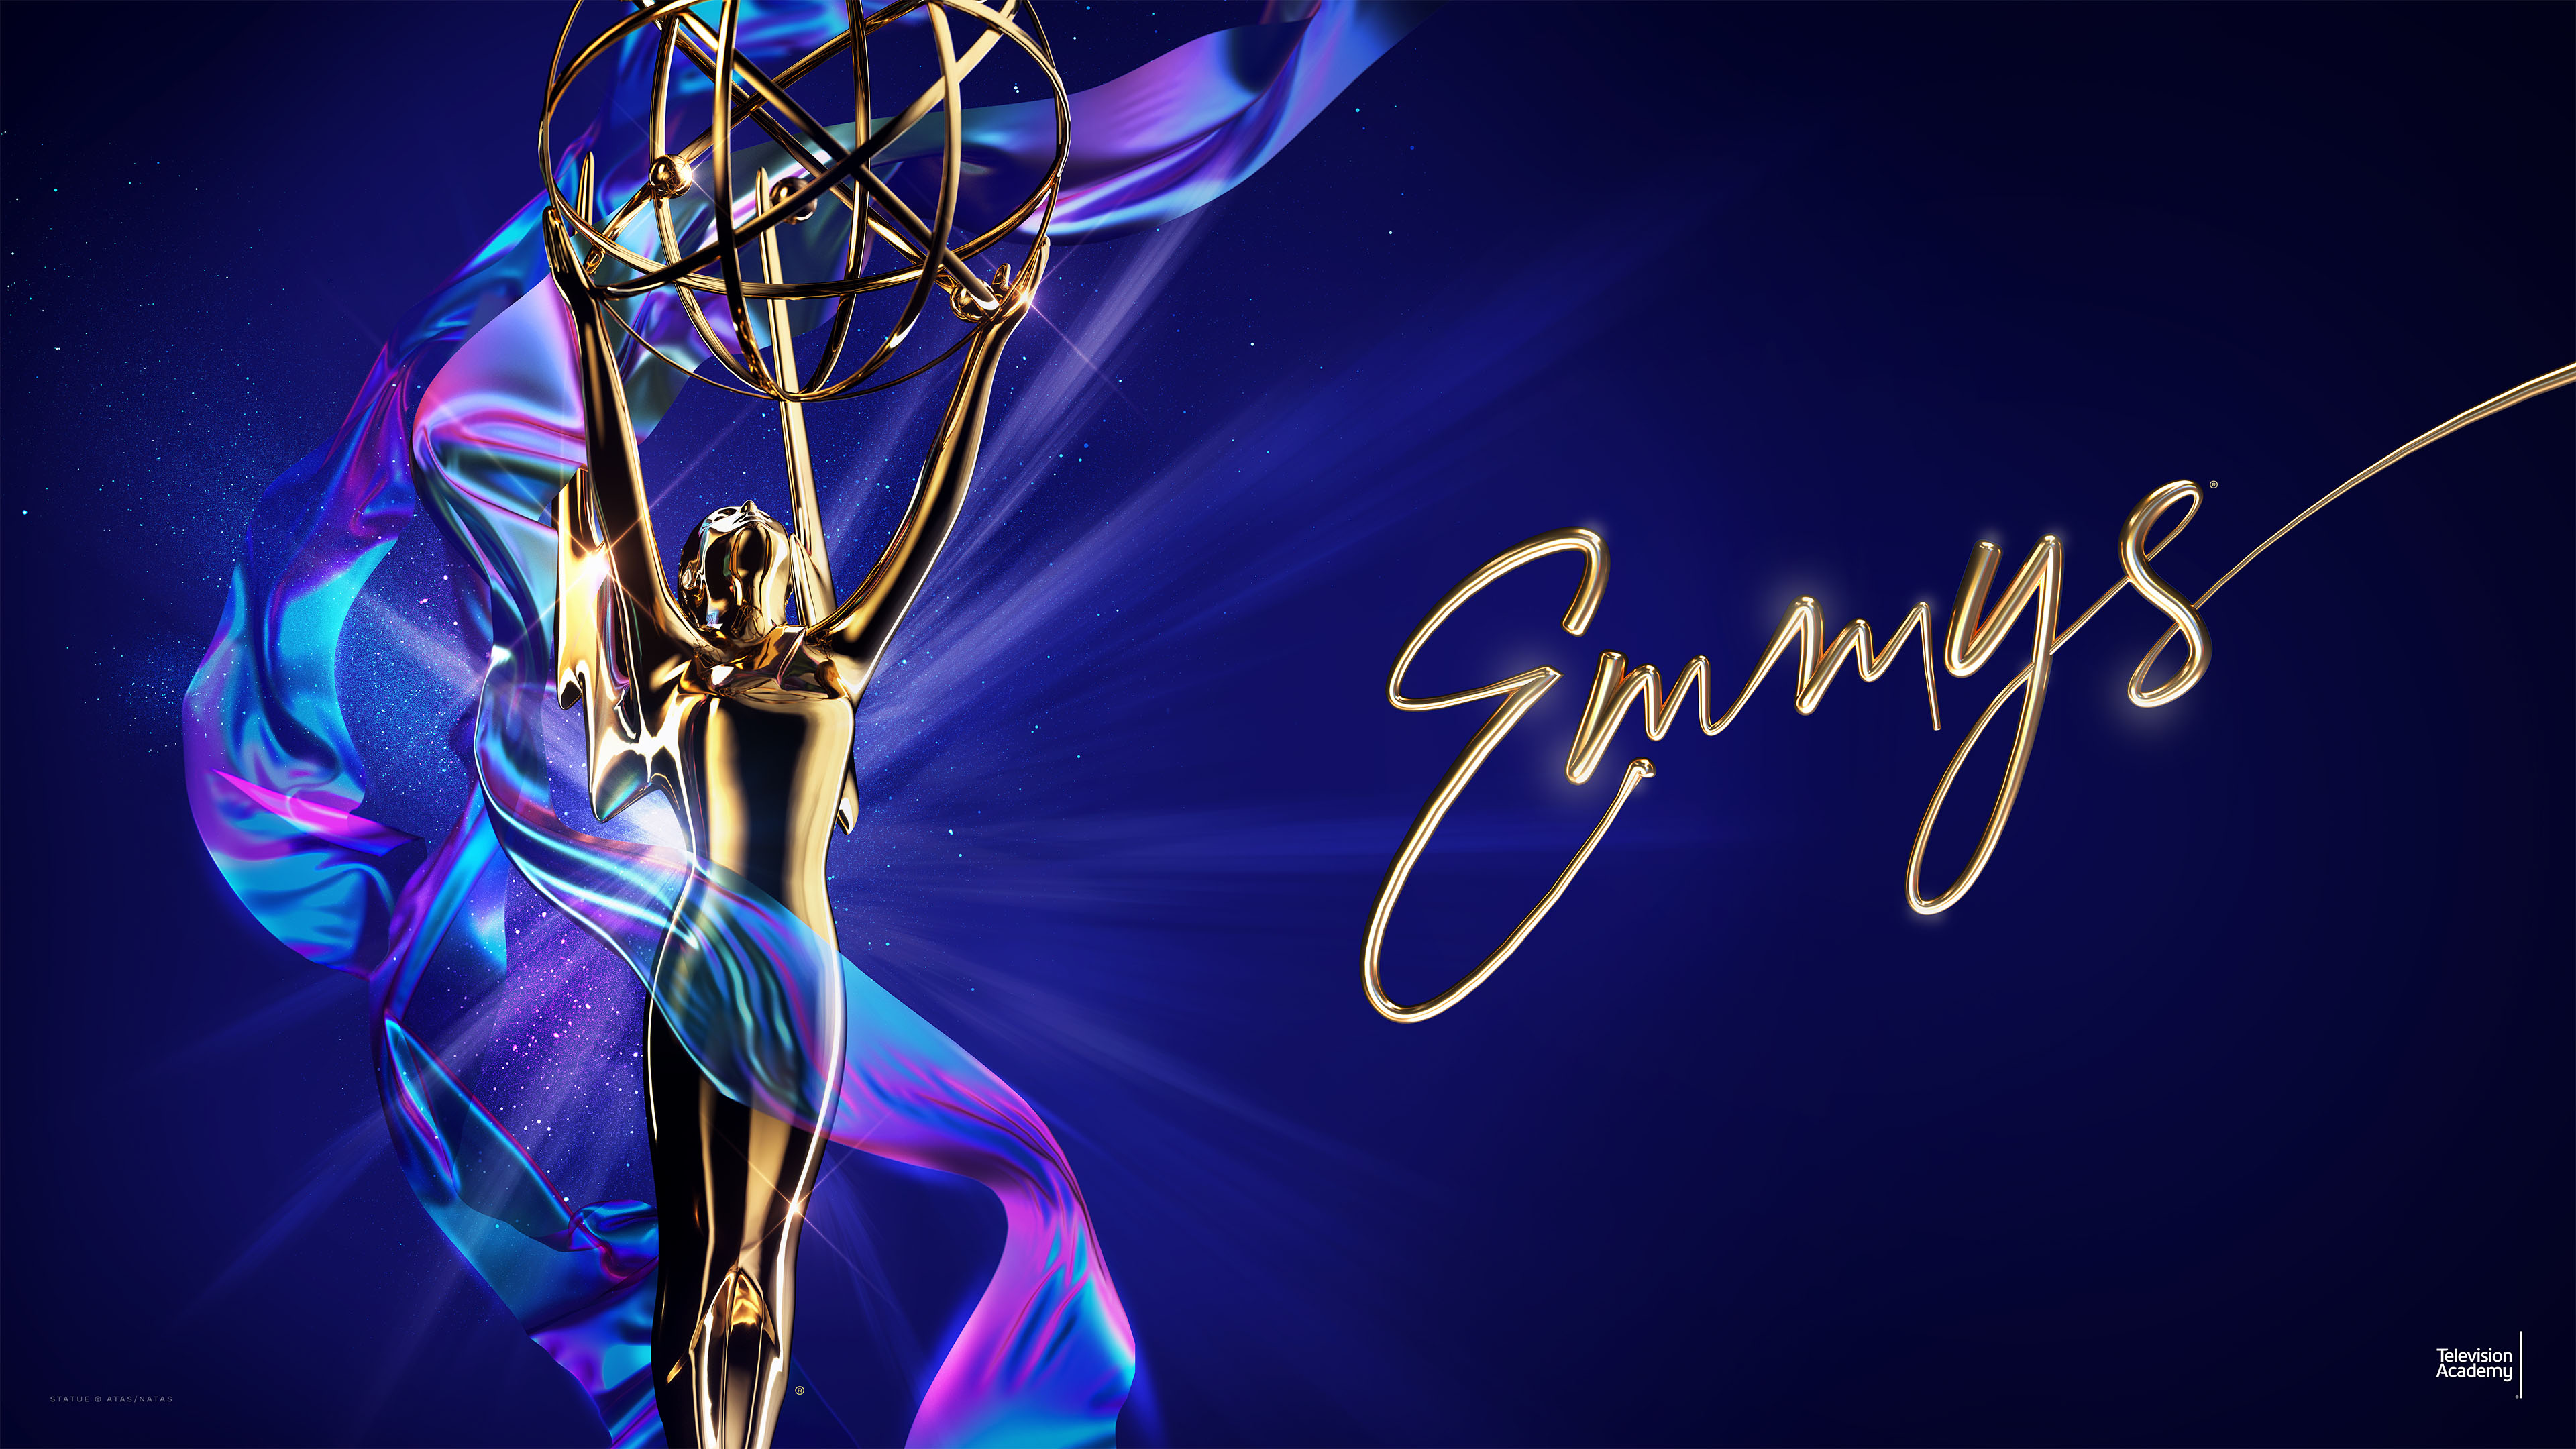 Watch the 2020 Emmys live on FOX Life!